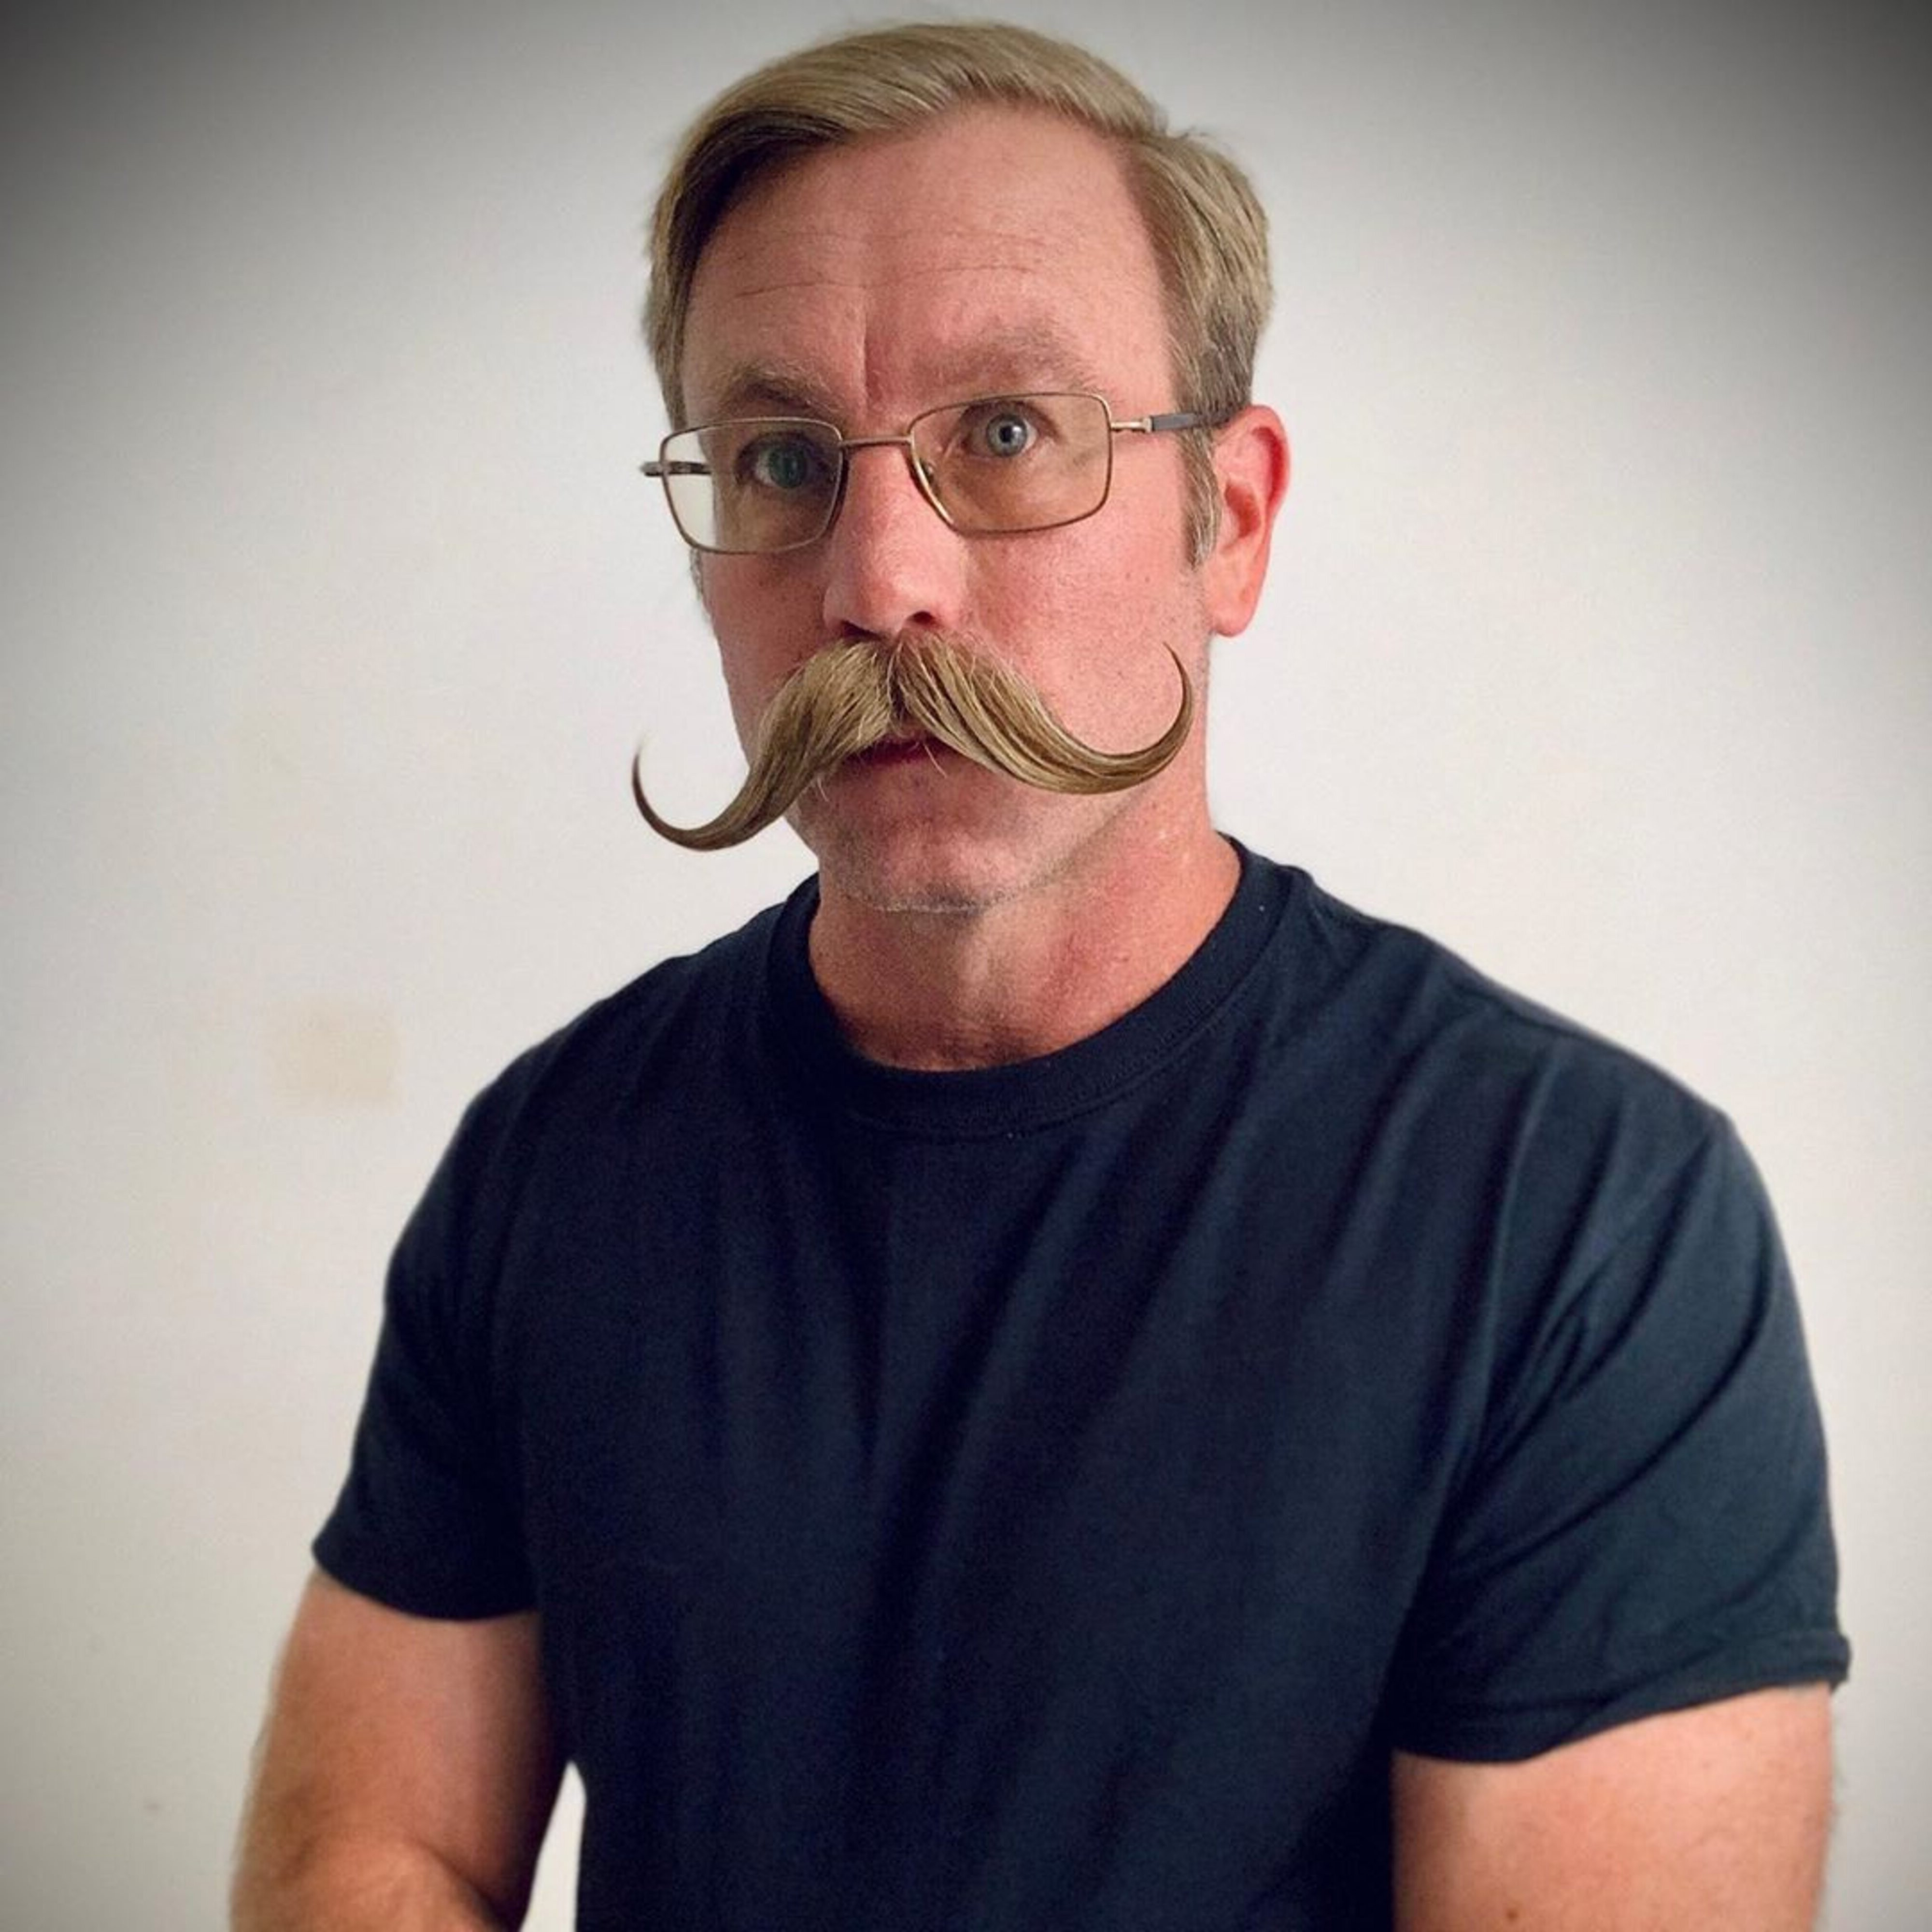 The biggest handlebar mustache for men.